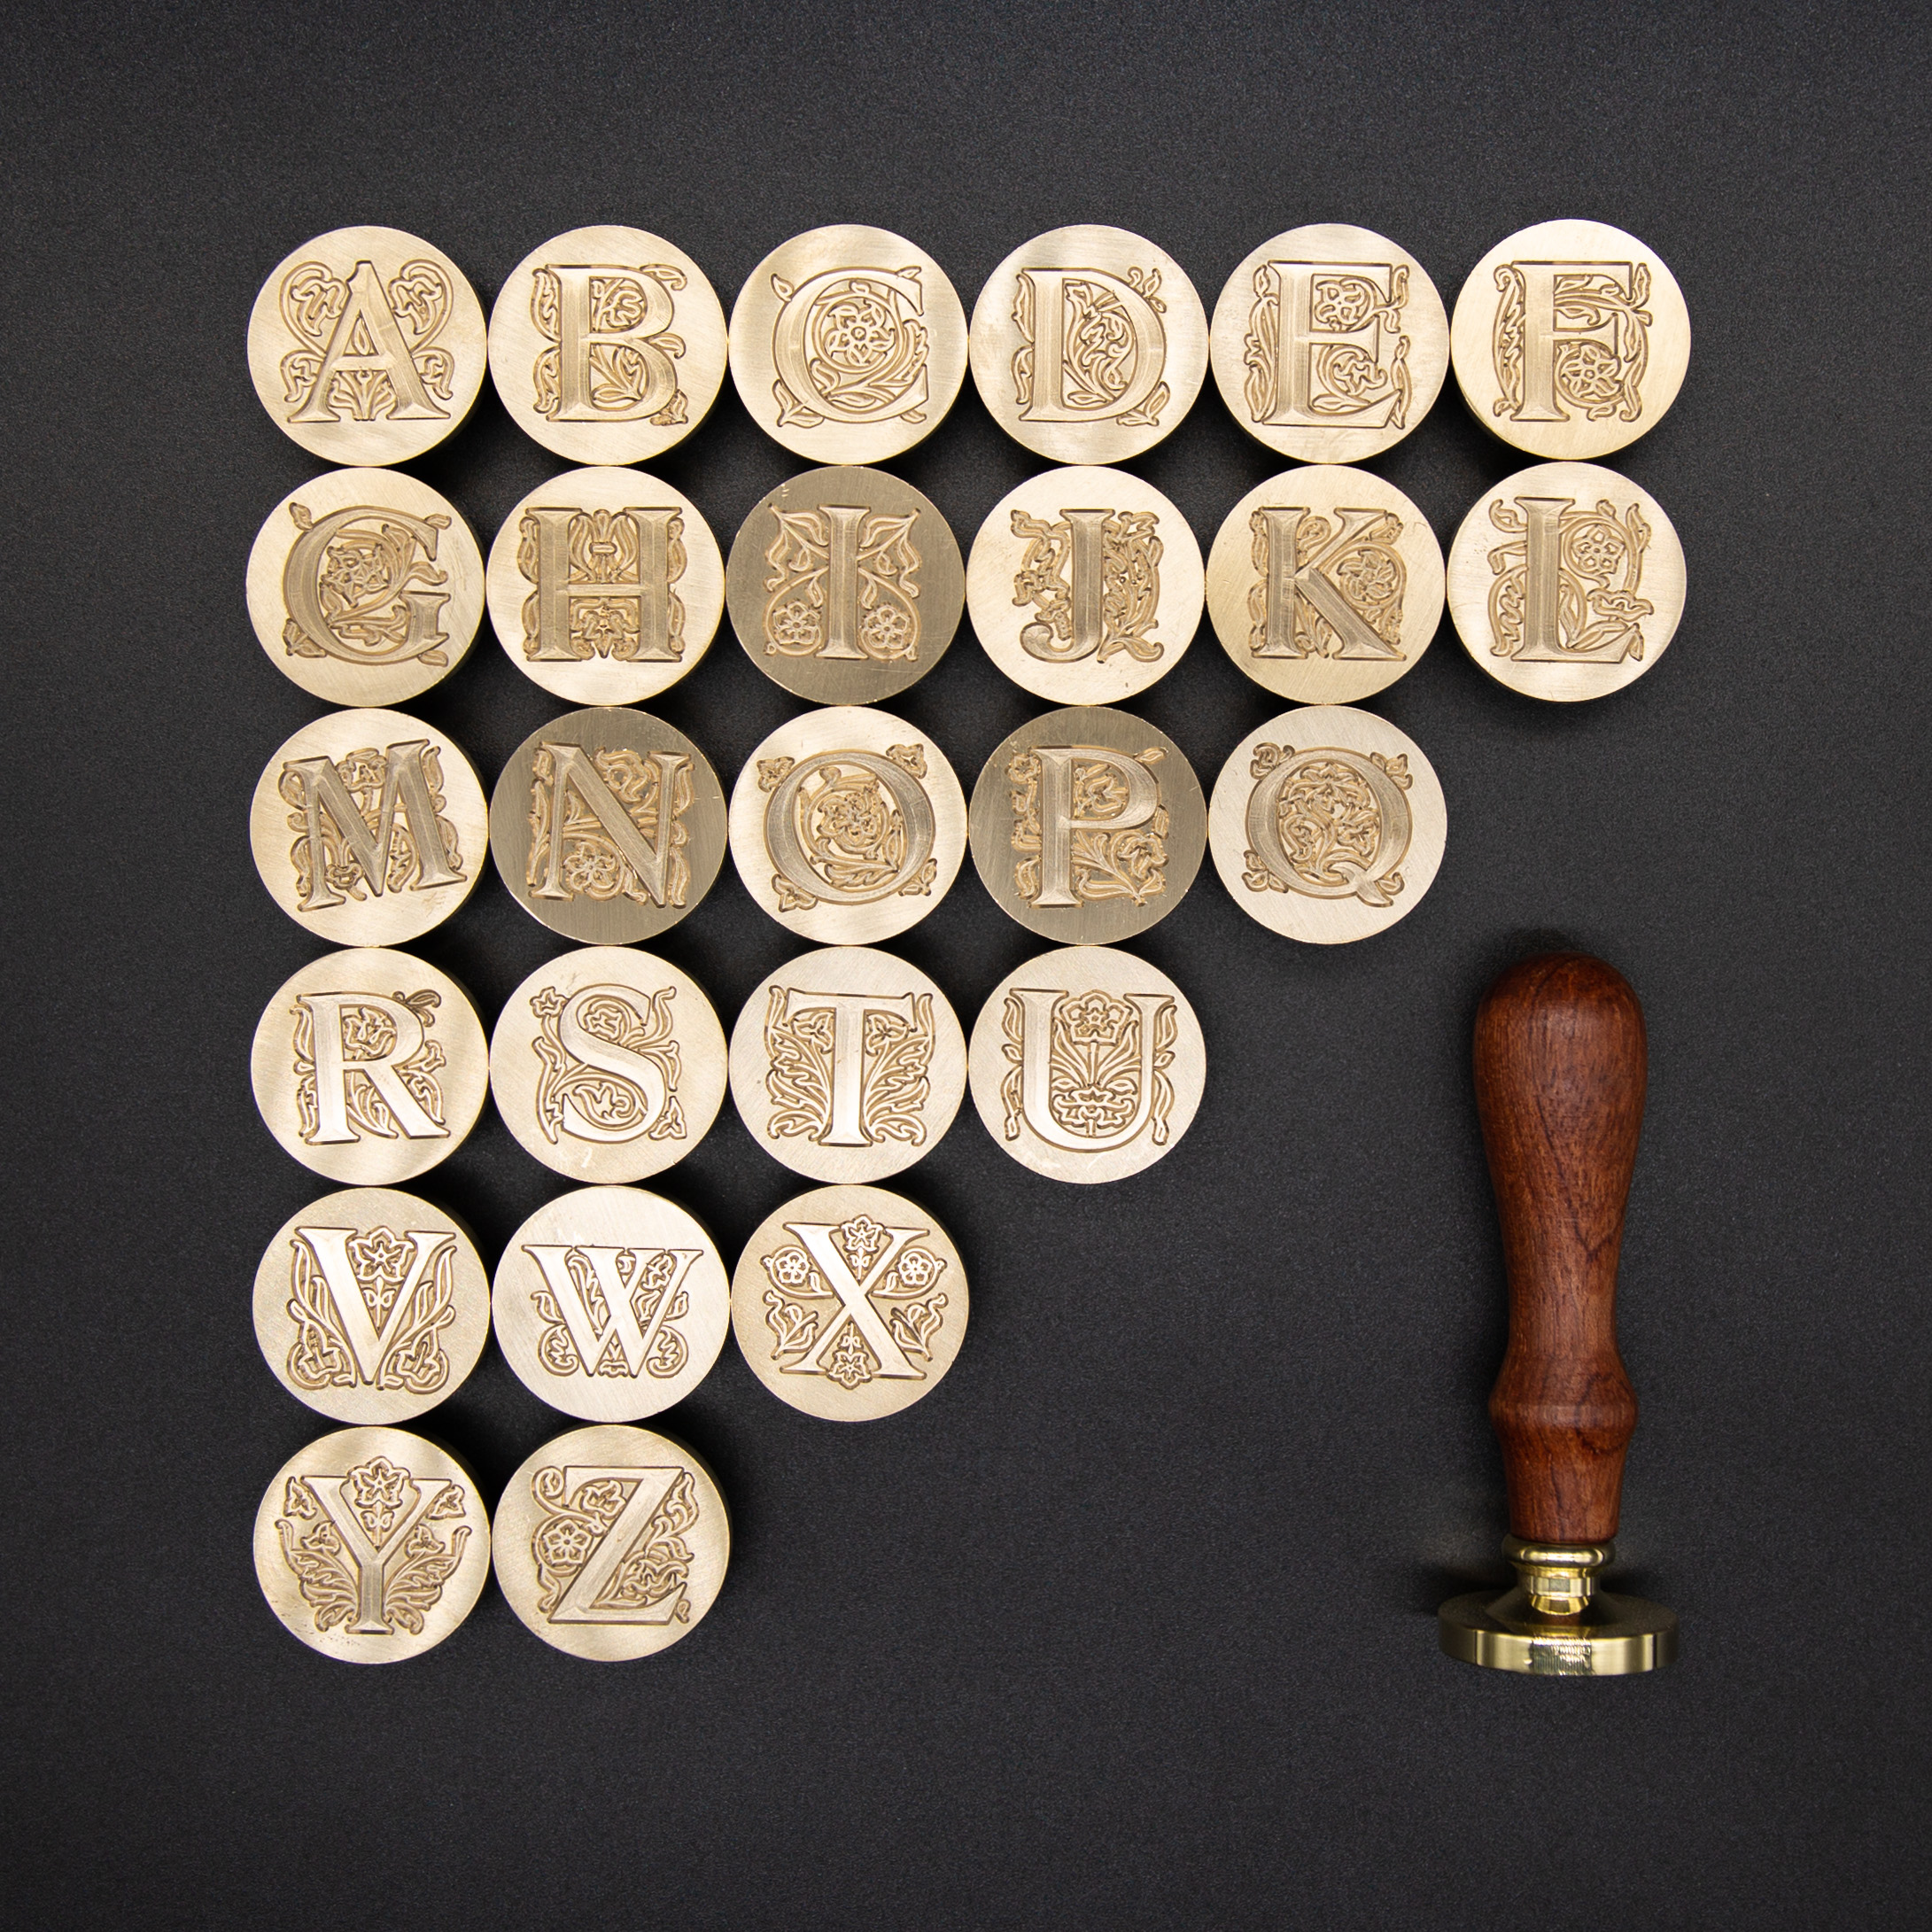 26 Letters Sealing Wax Seal stamp Classic Diy Retro Metal Card making Wax seal Stamp Handcrafts Wedding Invitations Tools